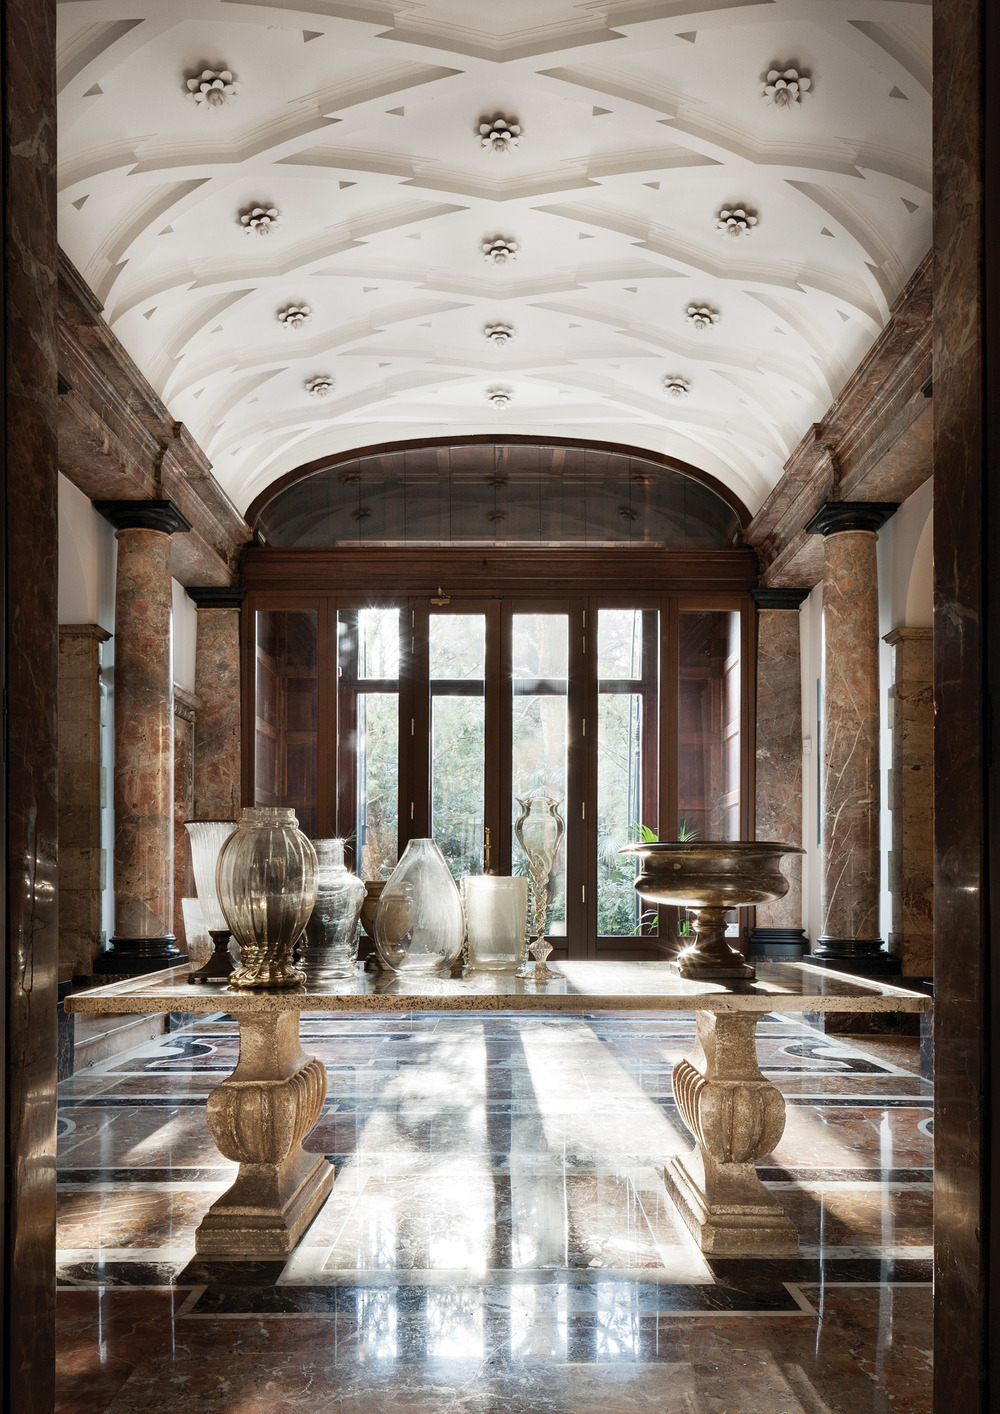 Bodino personally renovated the Villa with touches of classical regality and contemporary flair. Photo by Santi Caleca